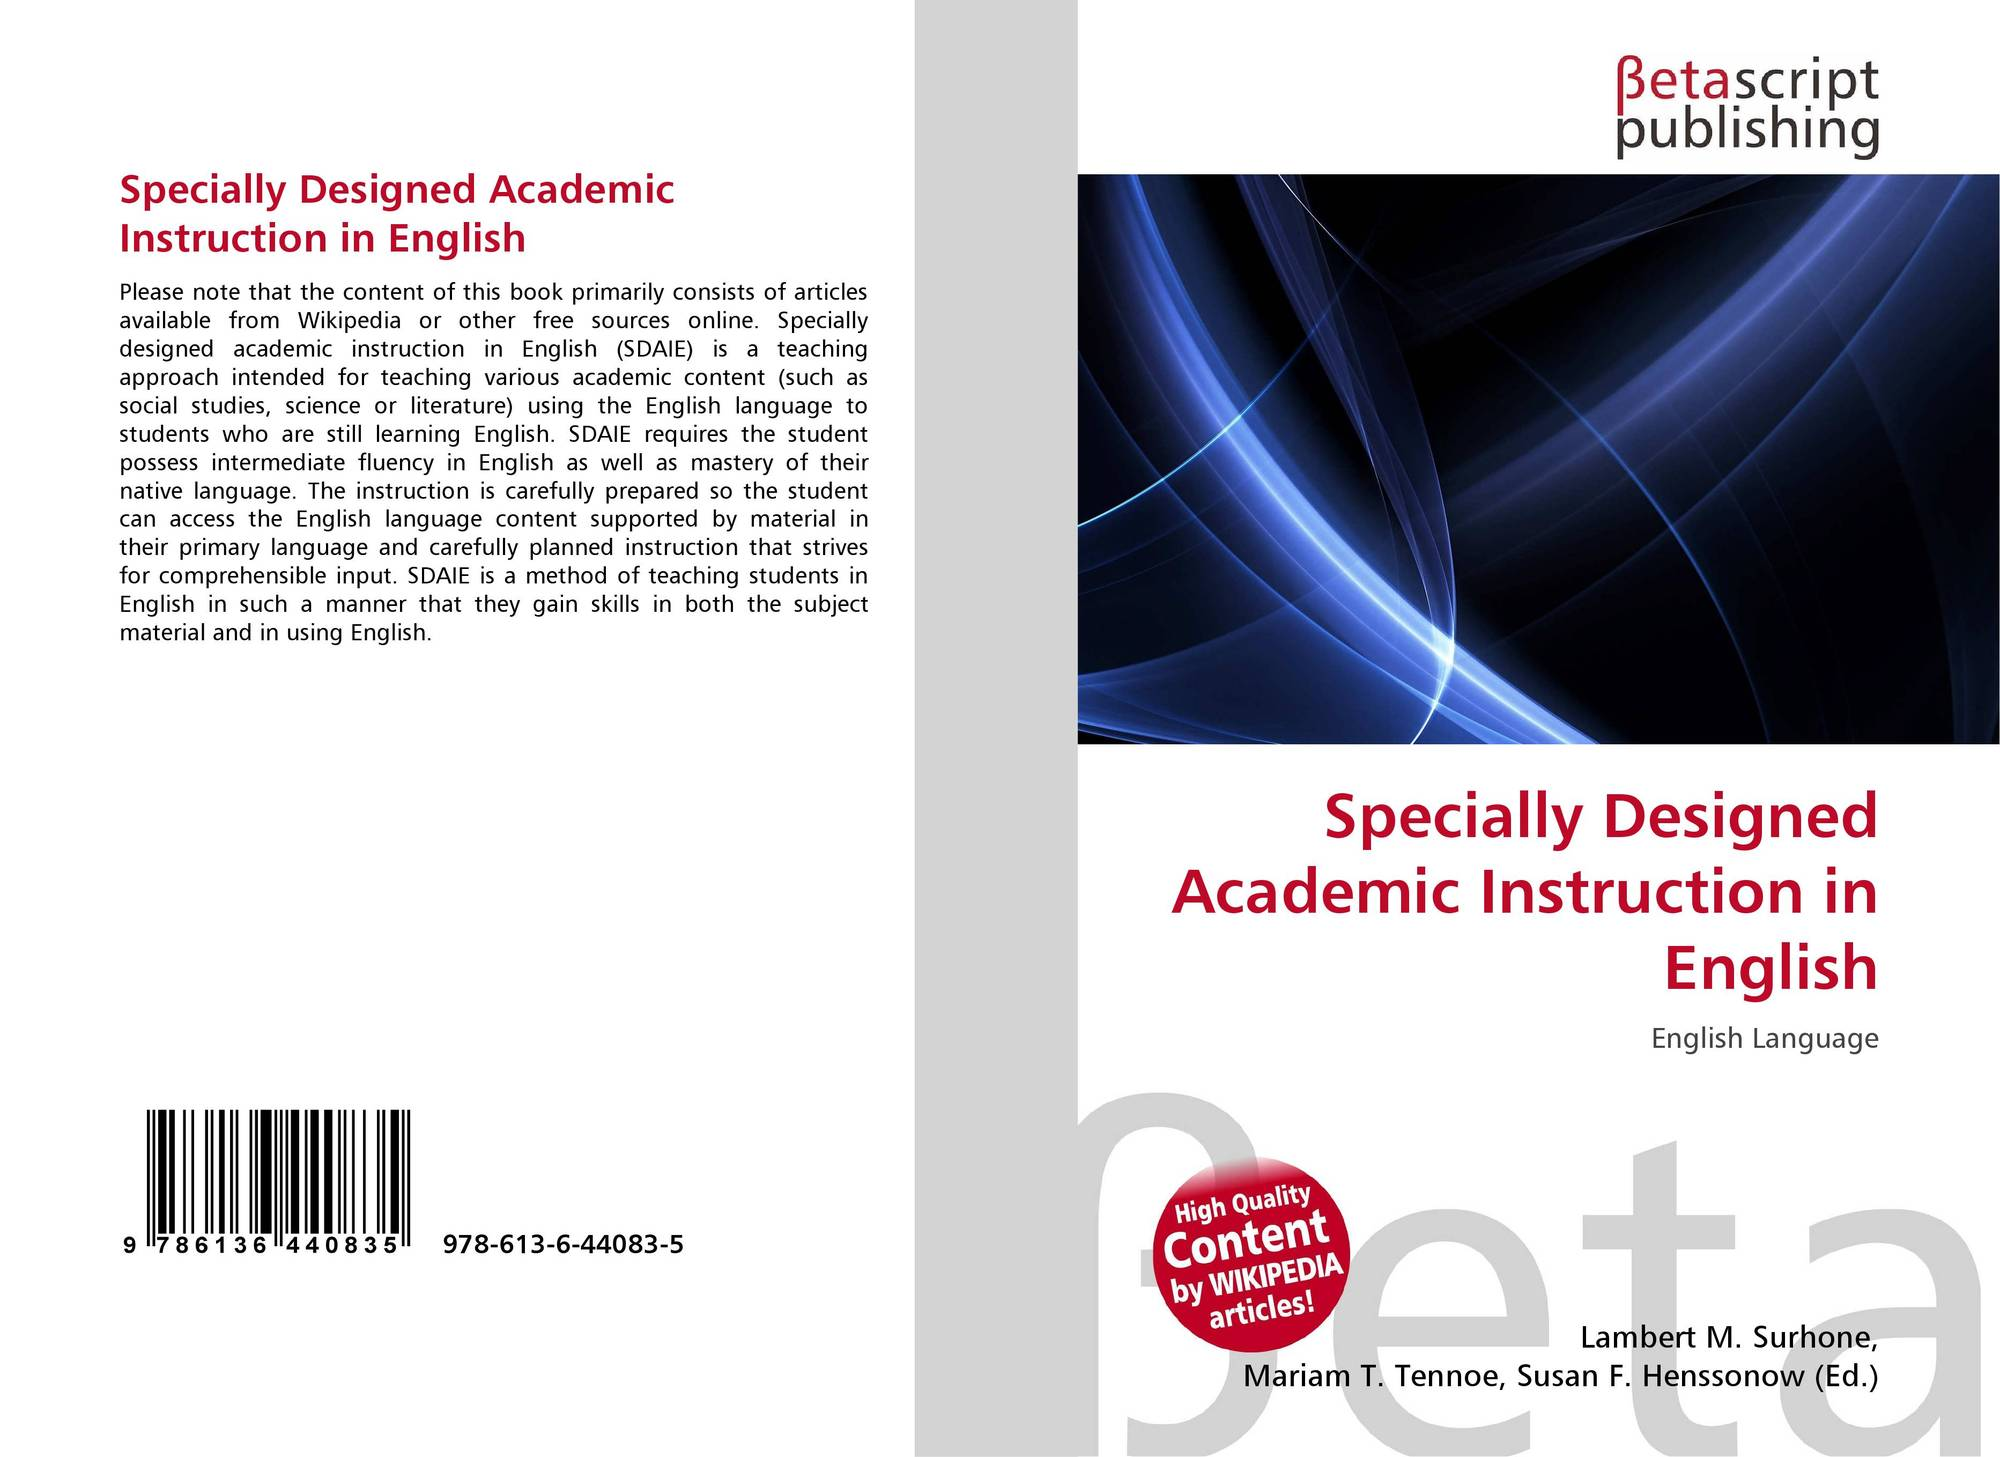 Specially Designed Academic Instruction In English 978 613 6 44083 5 6136440830 9786136440835